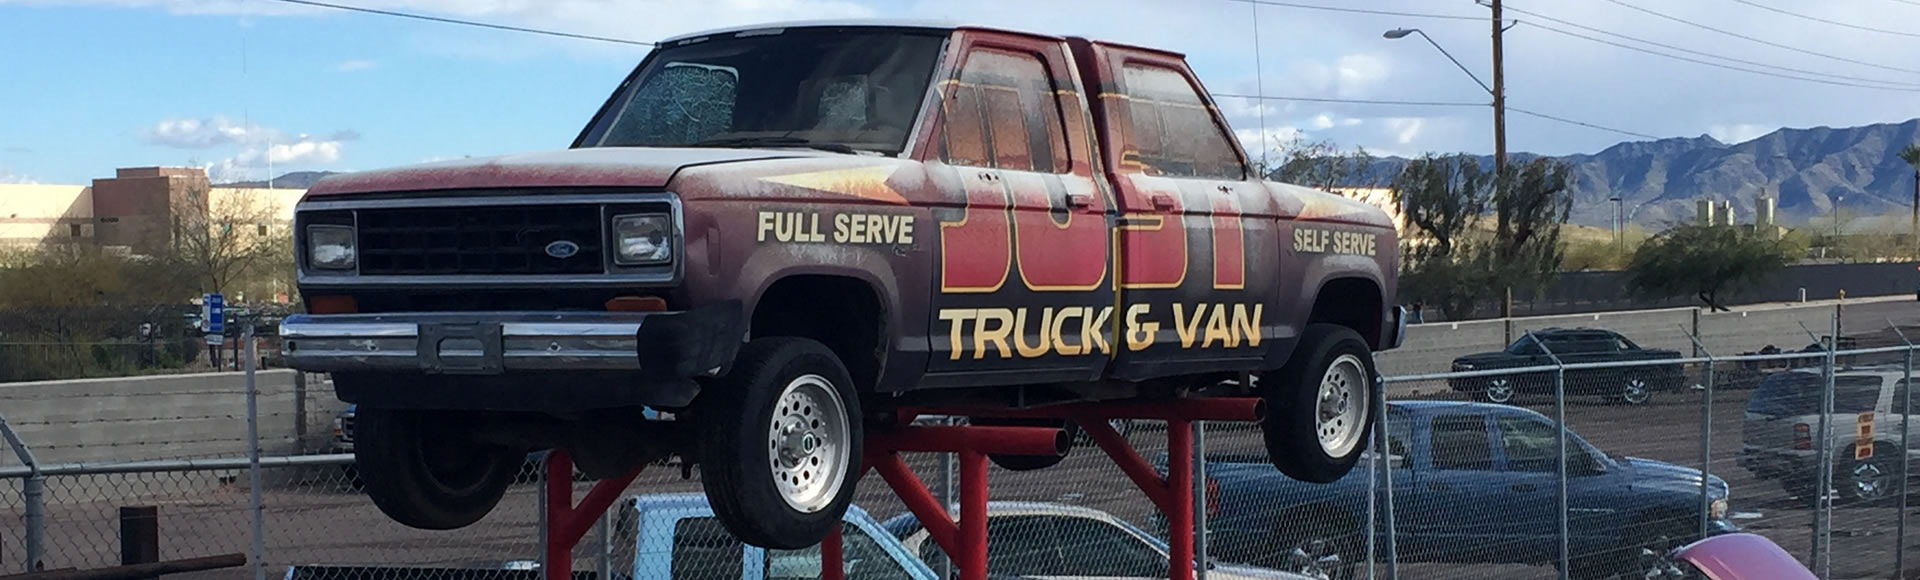 Sell truck to junkyard